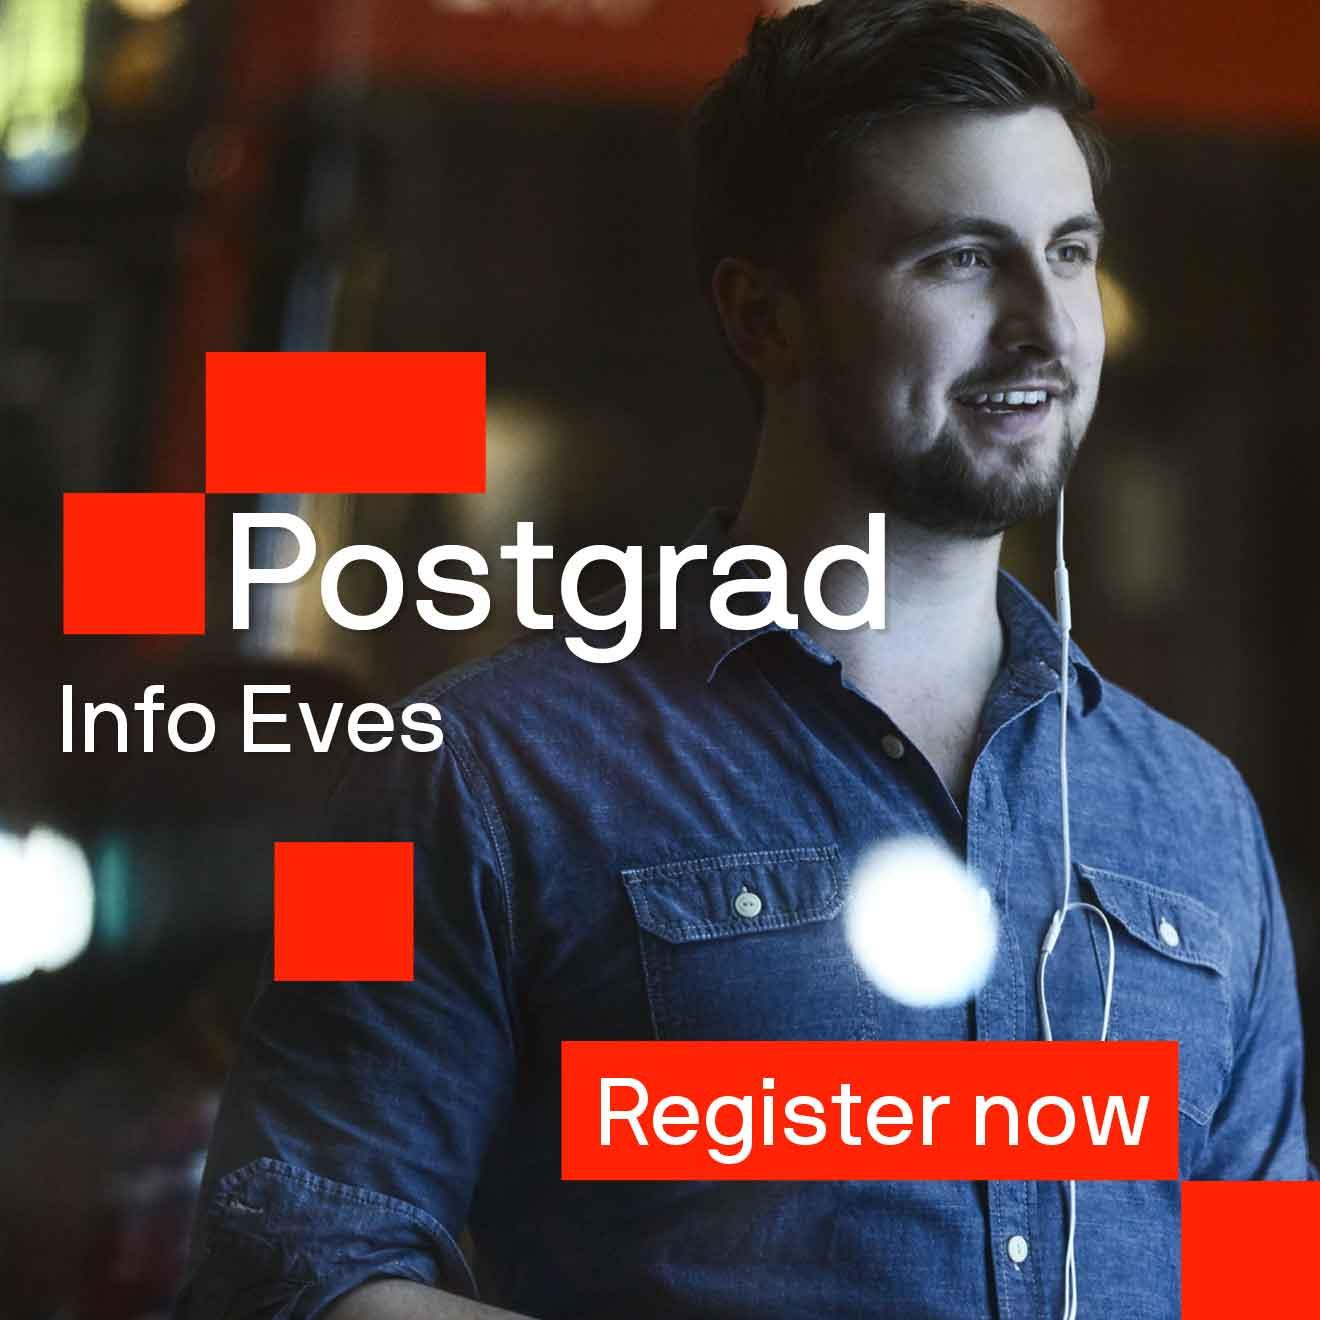 Promo tile for postgrad info events